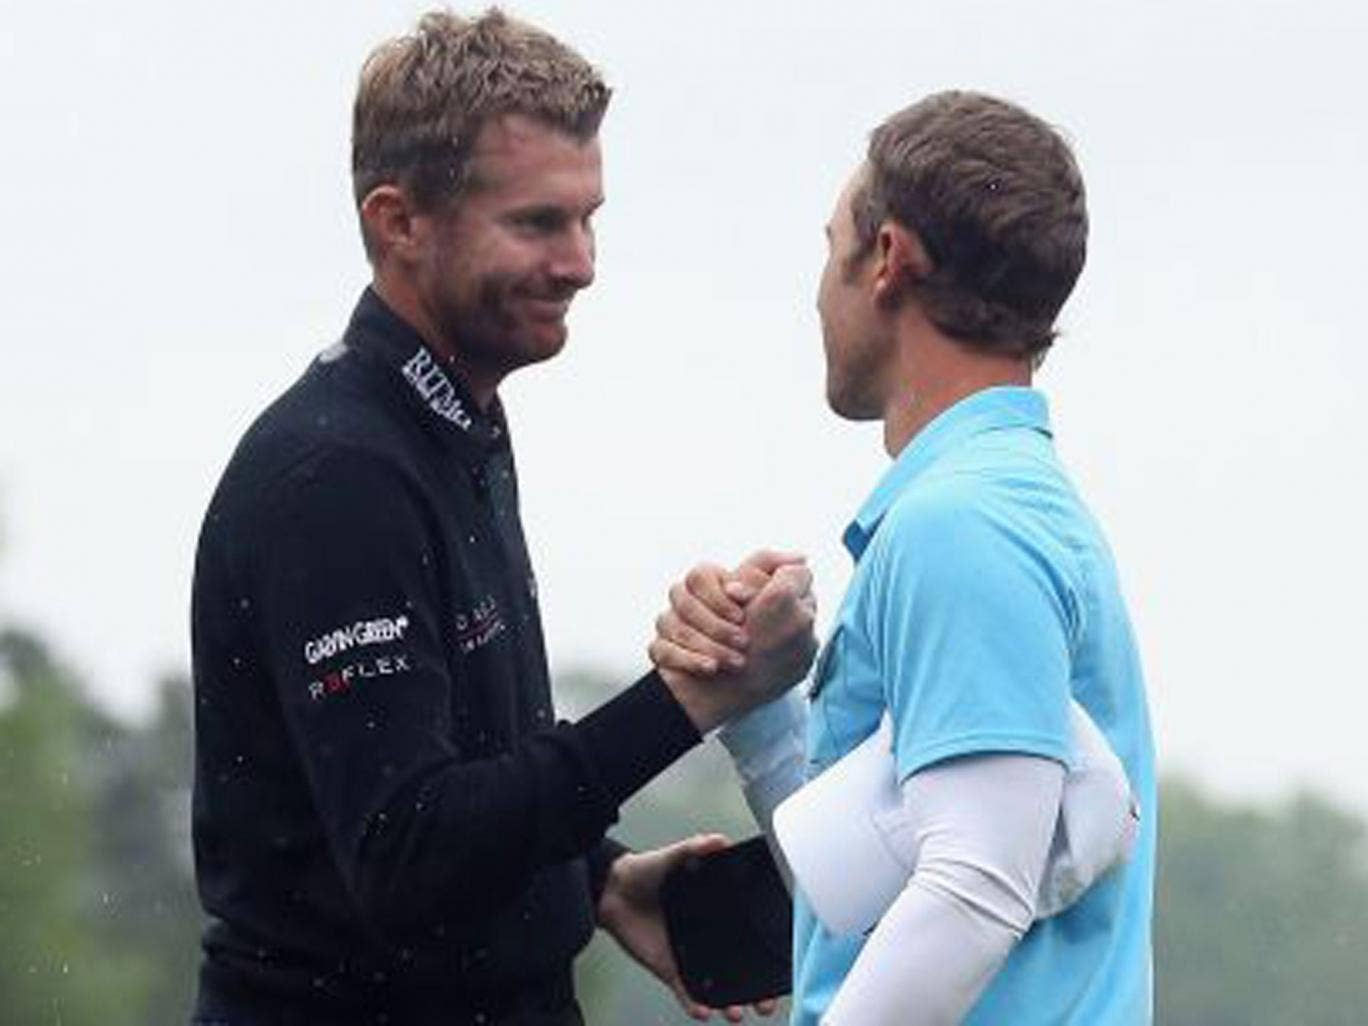 England's David Lynn (left) shakes hands with Derek Ernst after losing in a play-off